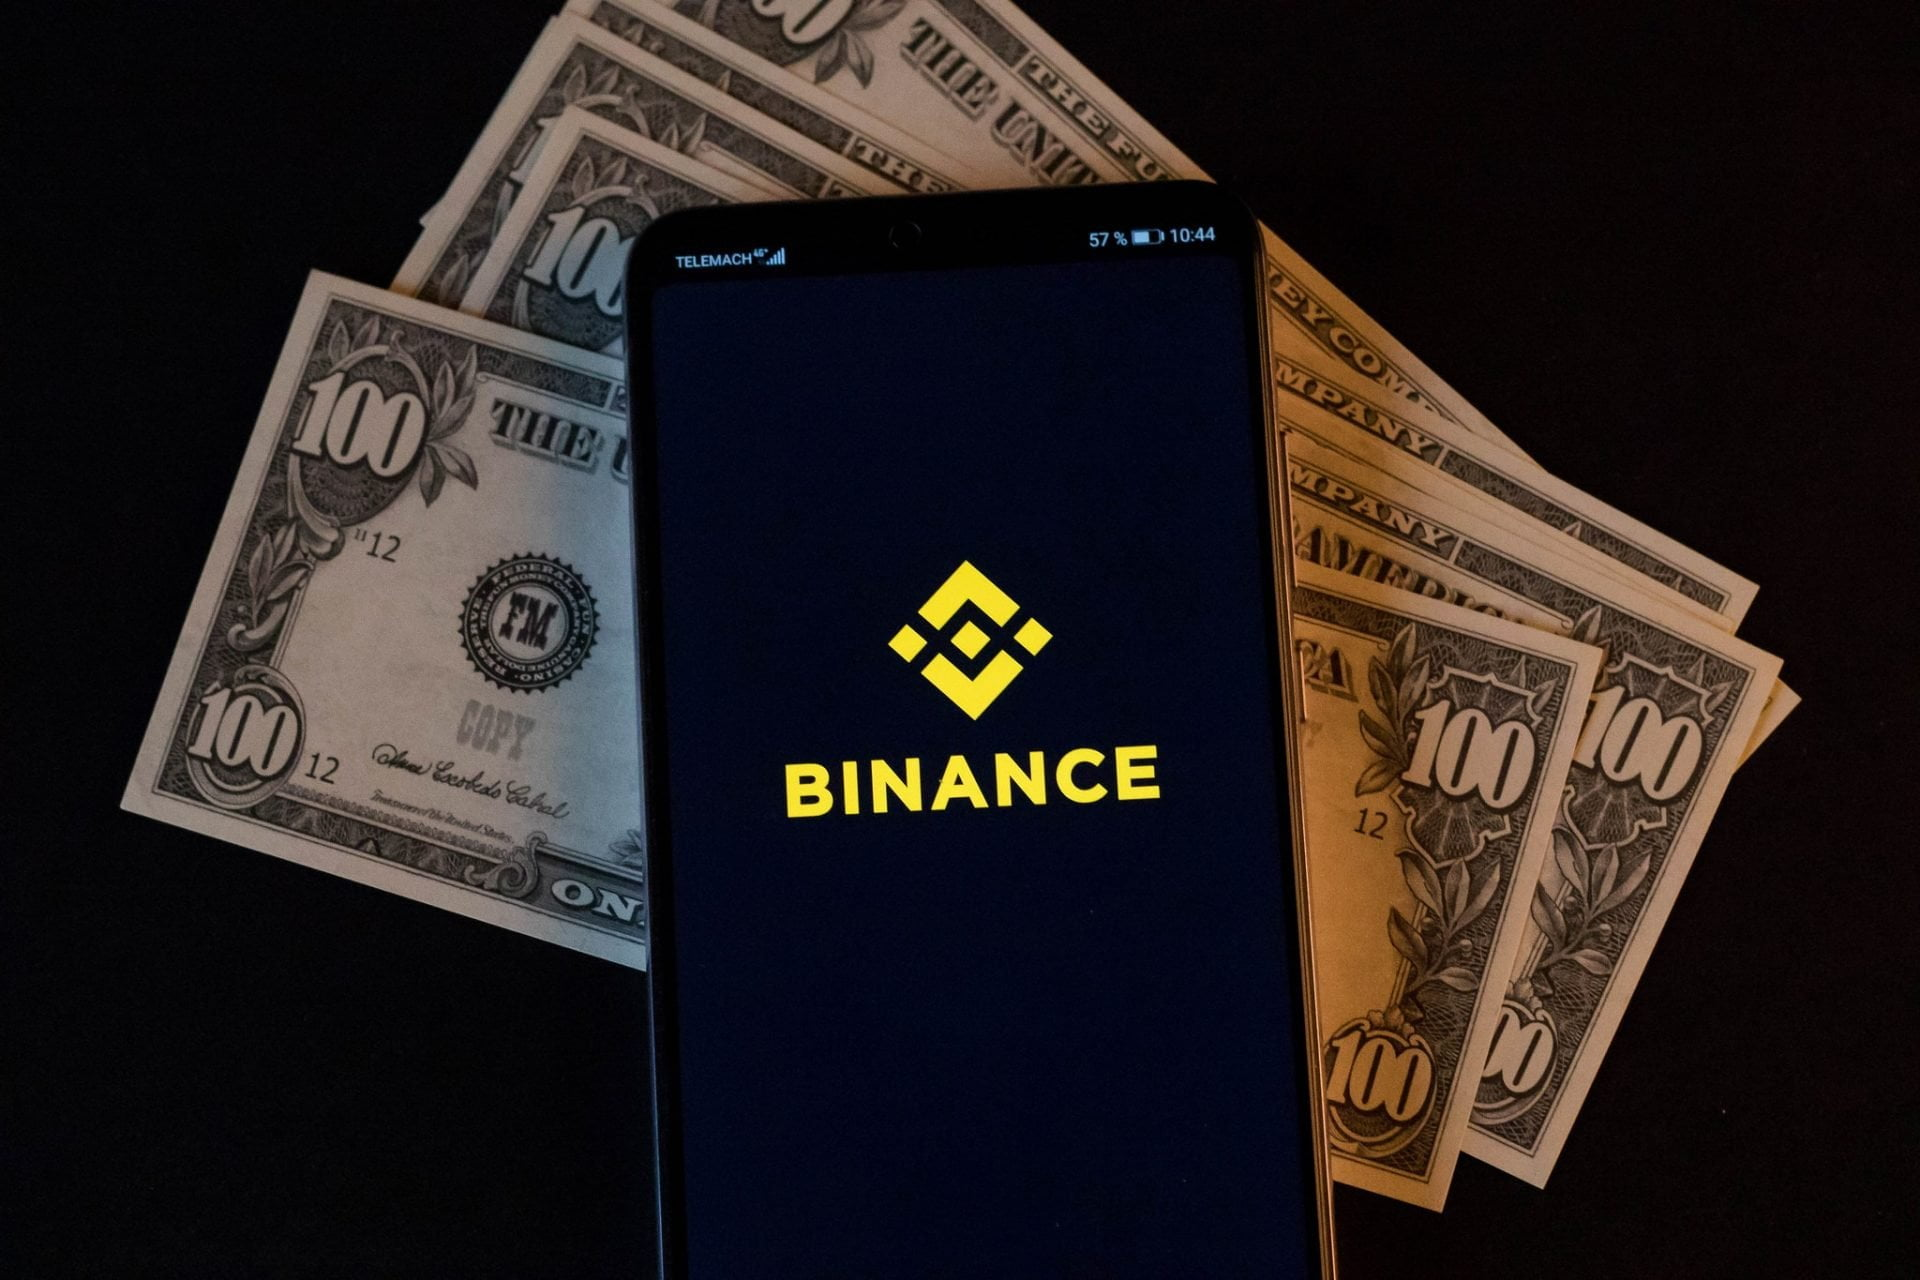 Binance Ships Out Crypto Debit Cards, But in Limited Quantities 15